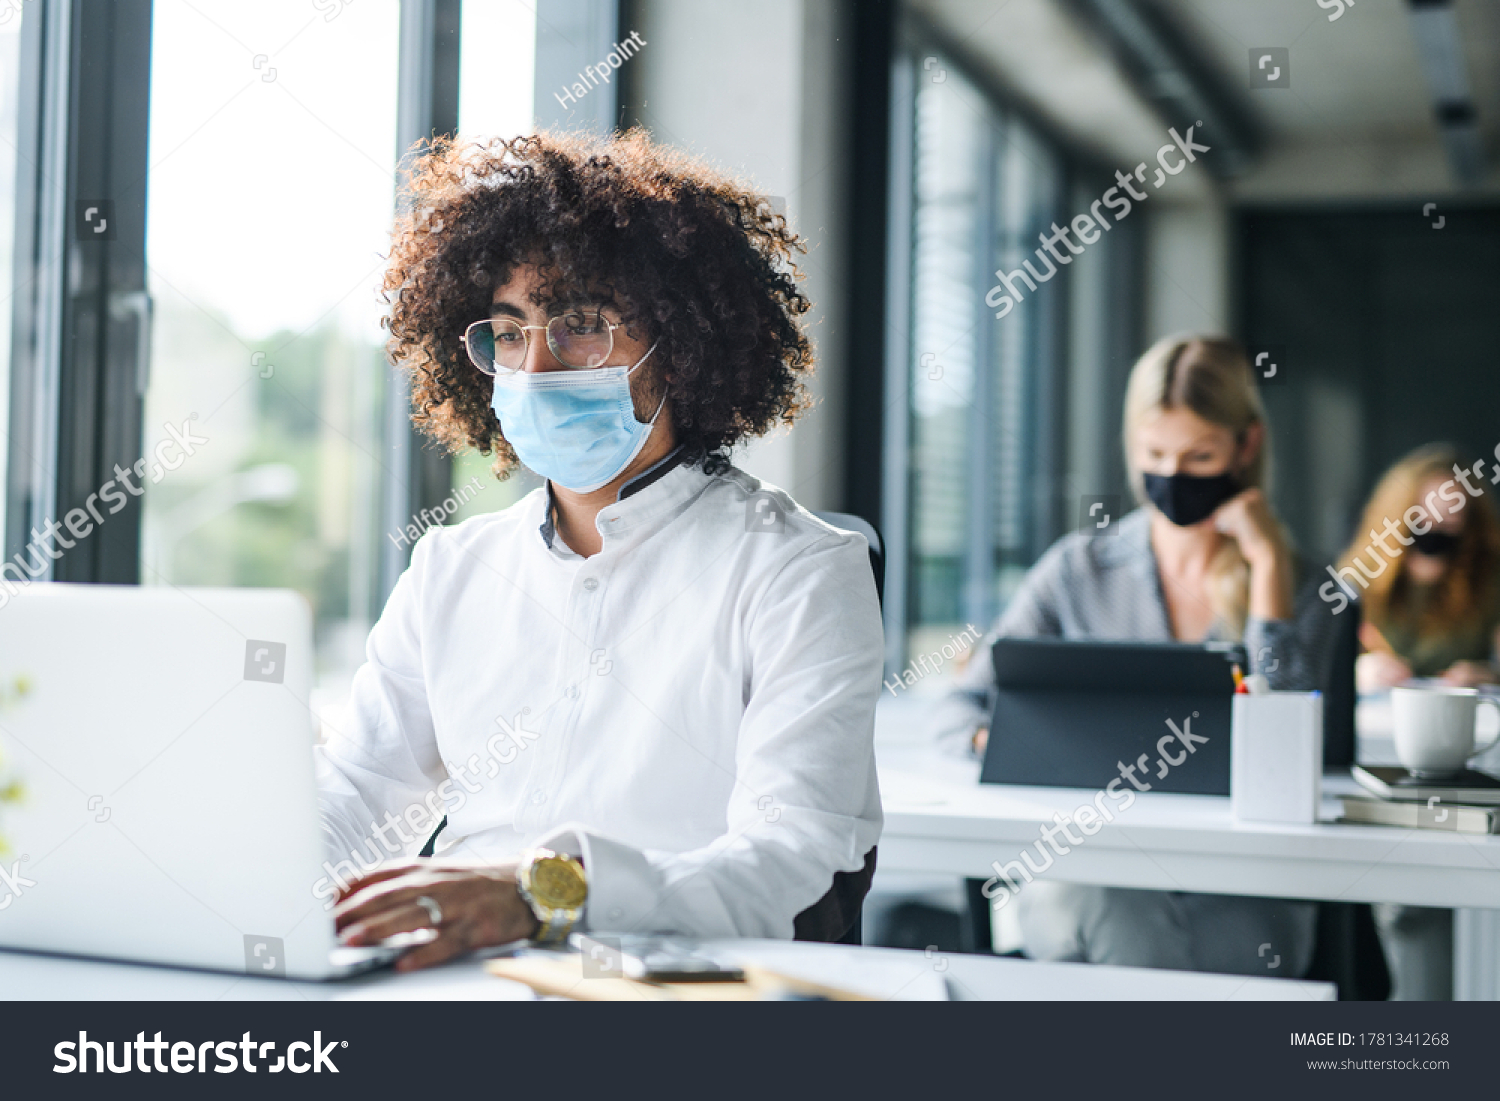 Portrait of young man with face mask back at work in office after lockdown. #1781341268